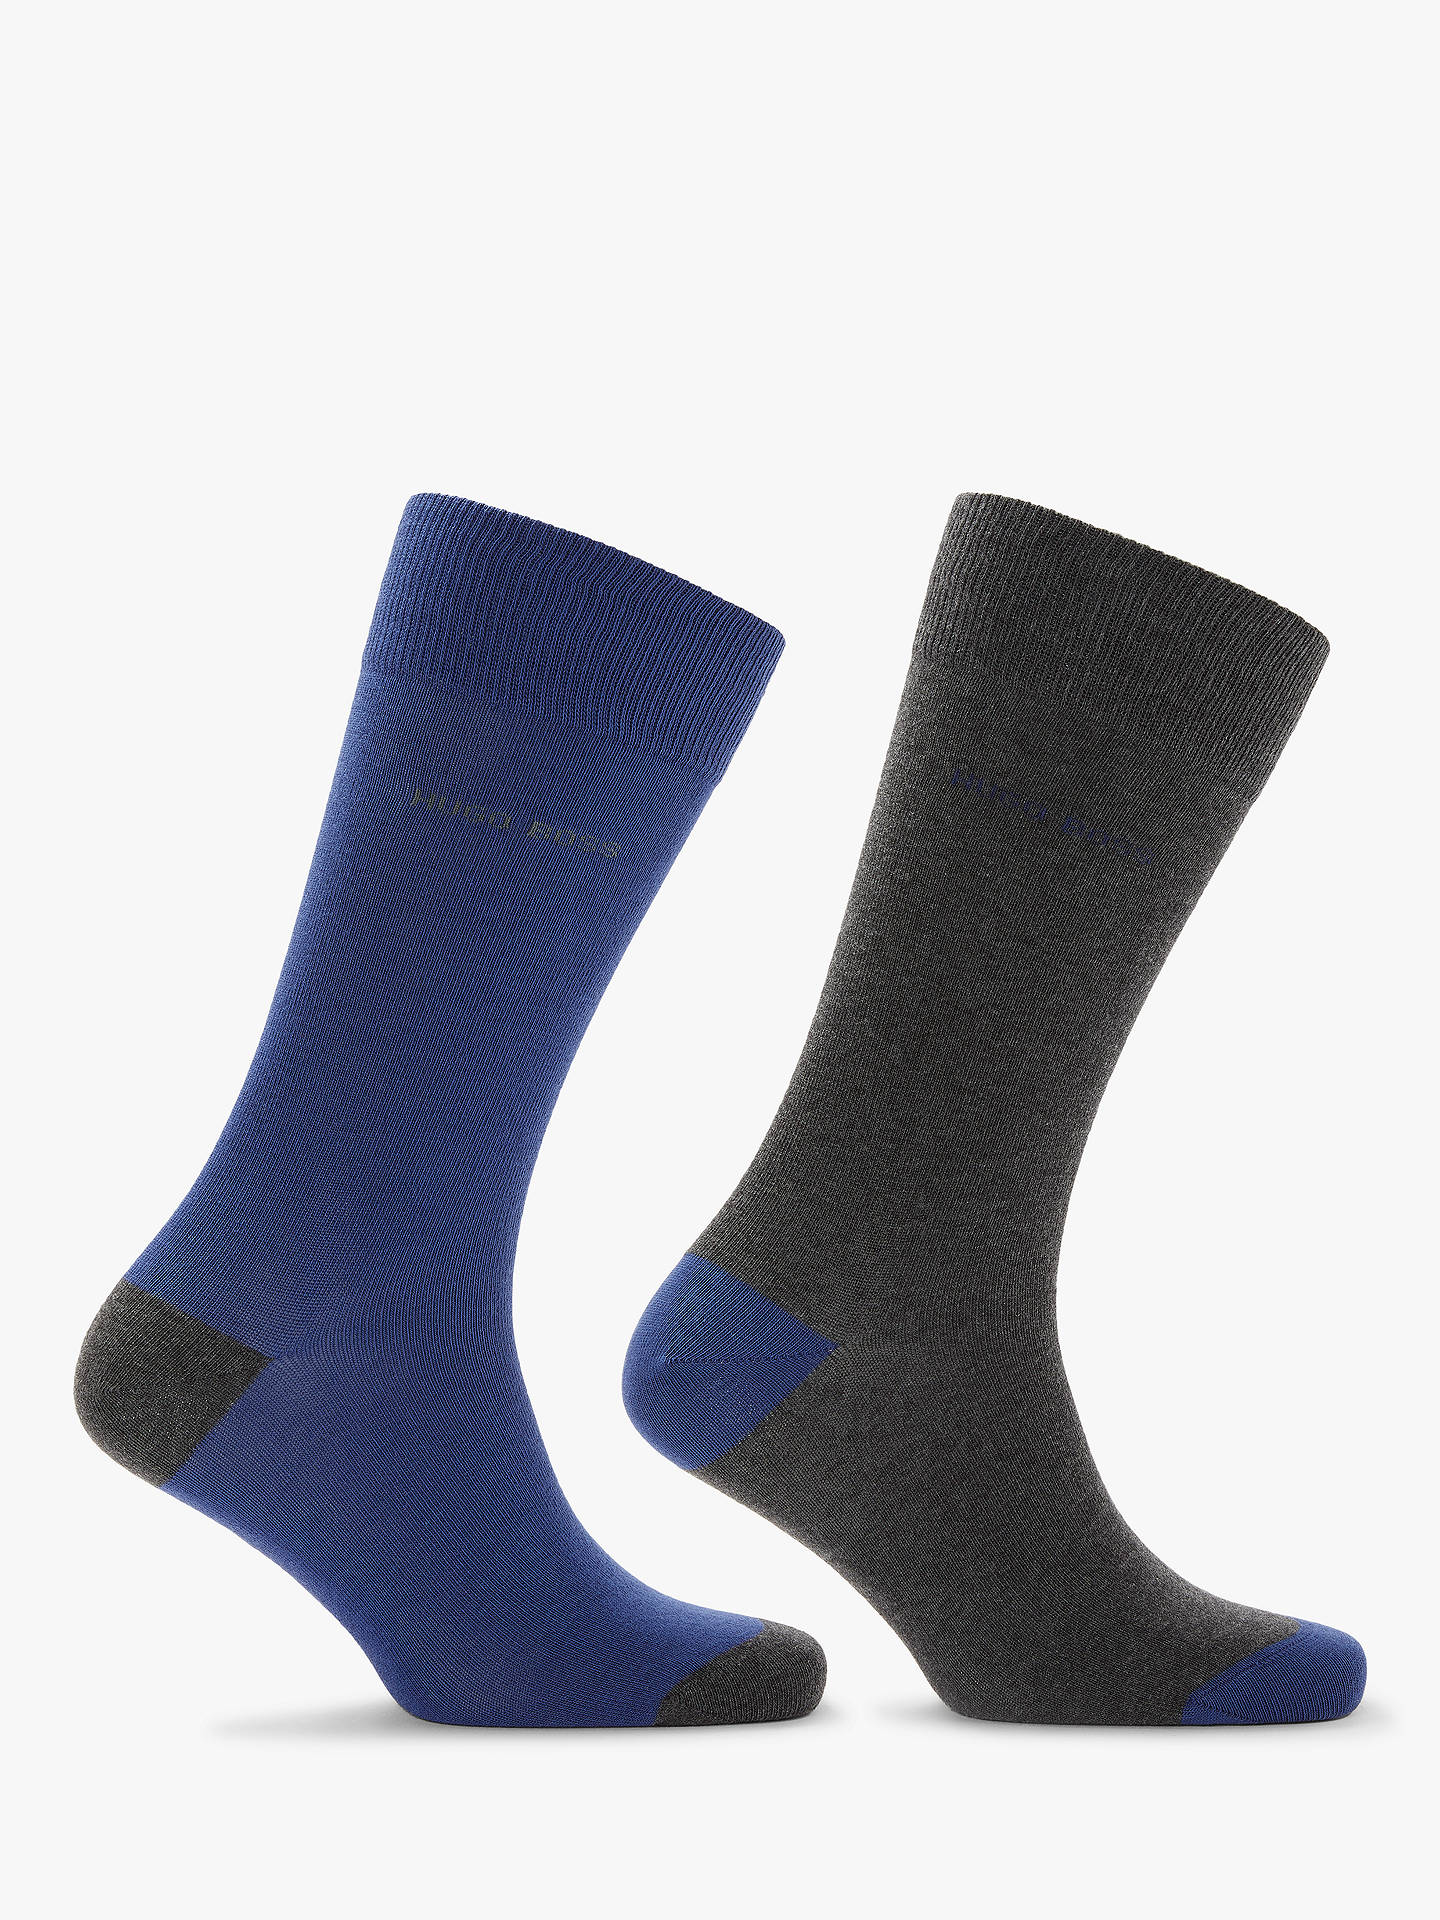 BuyBOSS Heel and Toe Socks, Pack of 2, Blue/Charcoal, M Online at johnlewis.com